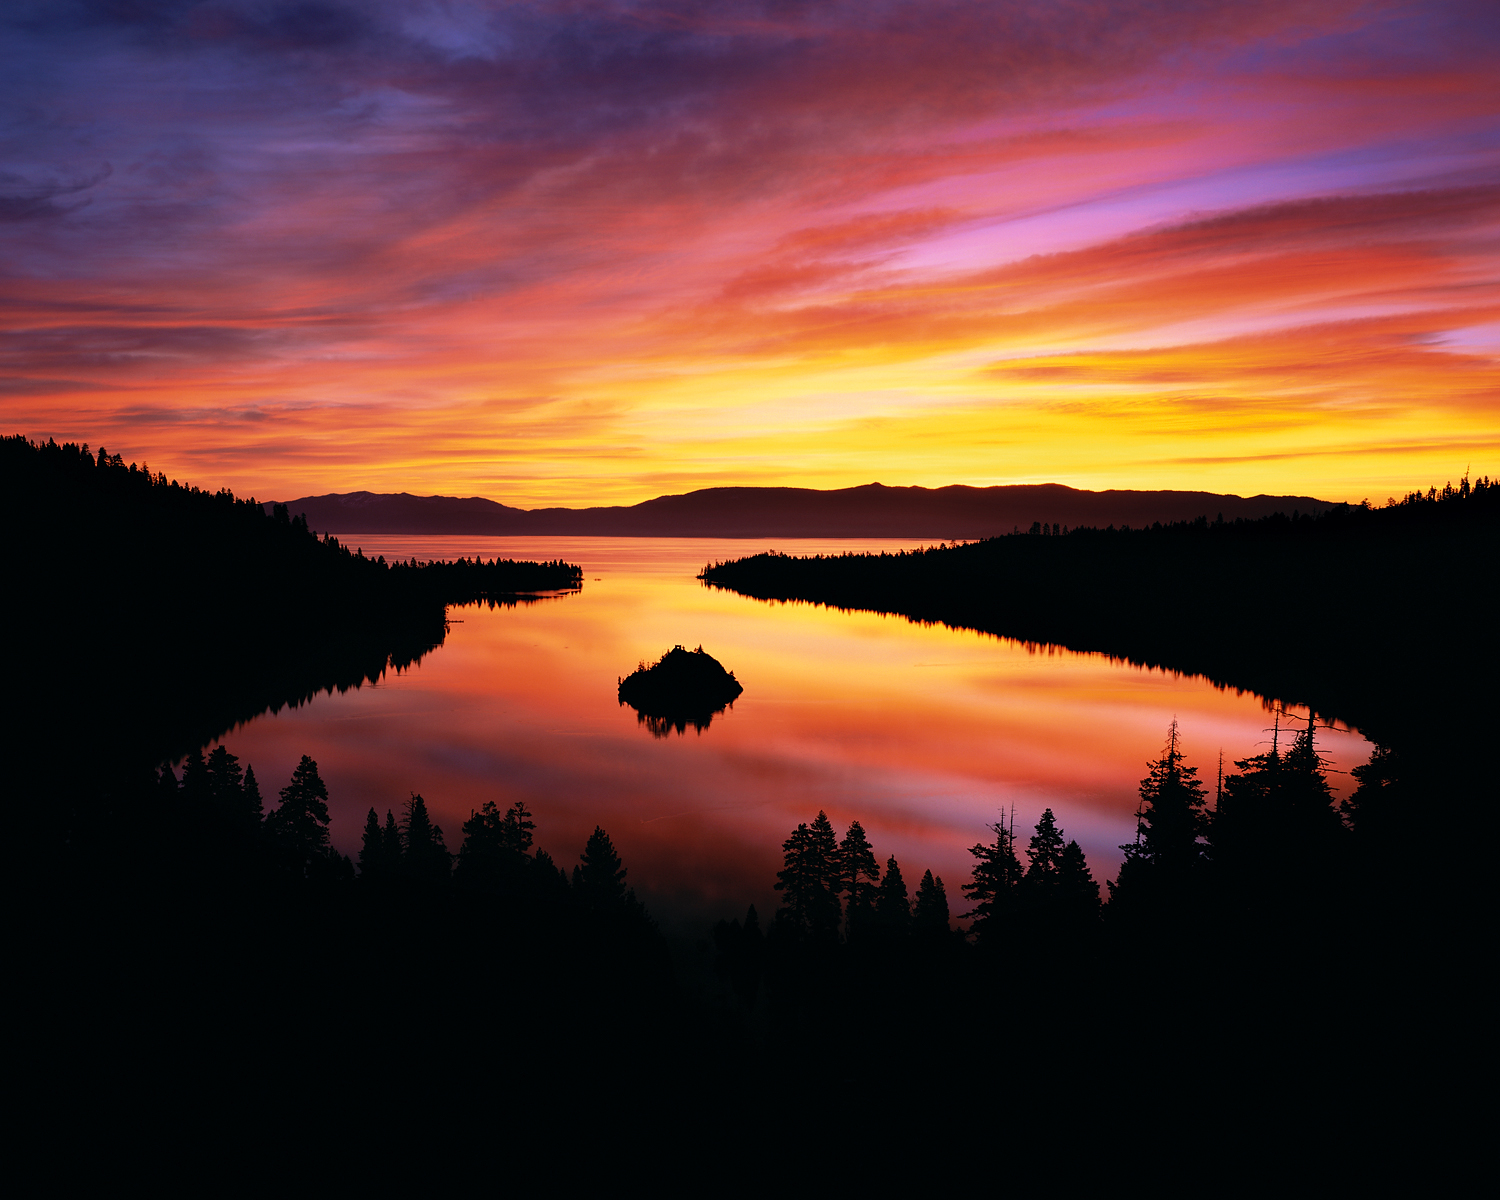 Molten Morning, Emerald Bay, Lake Tahoe